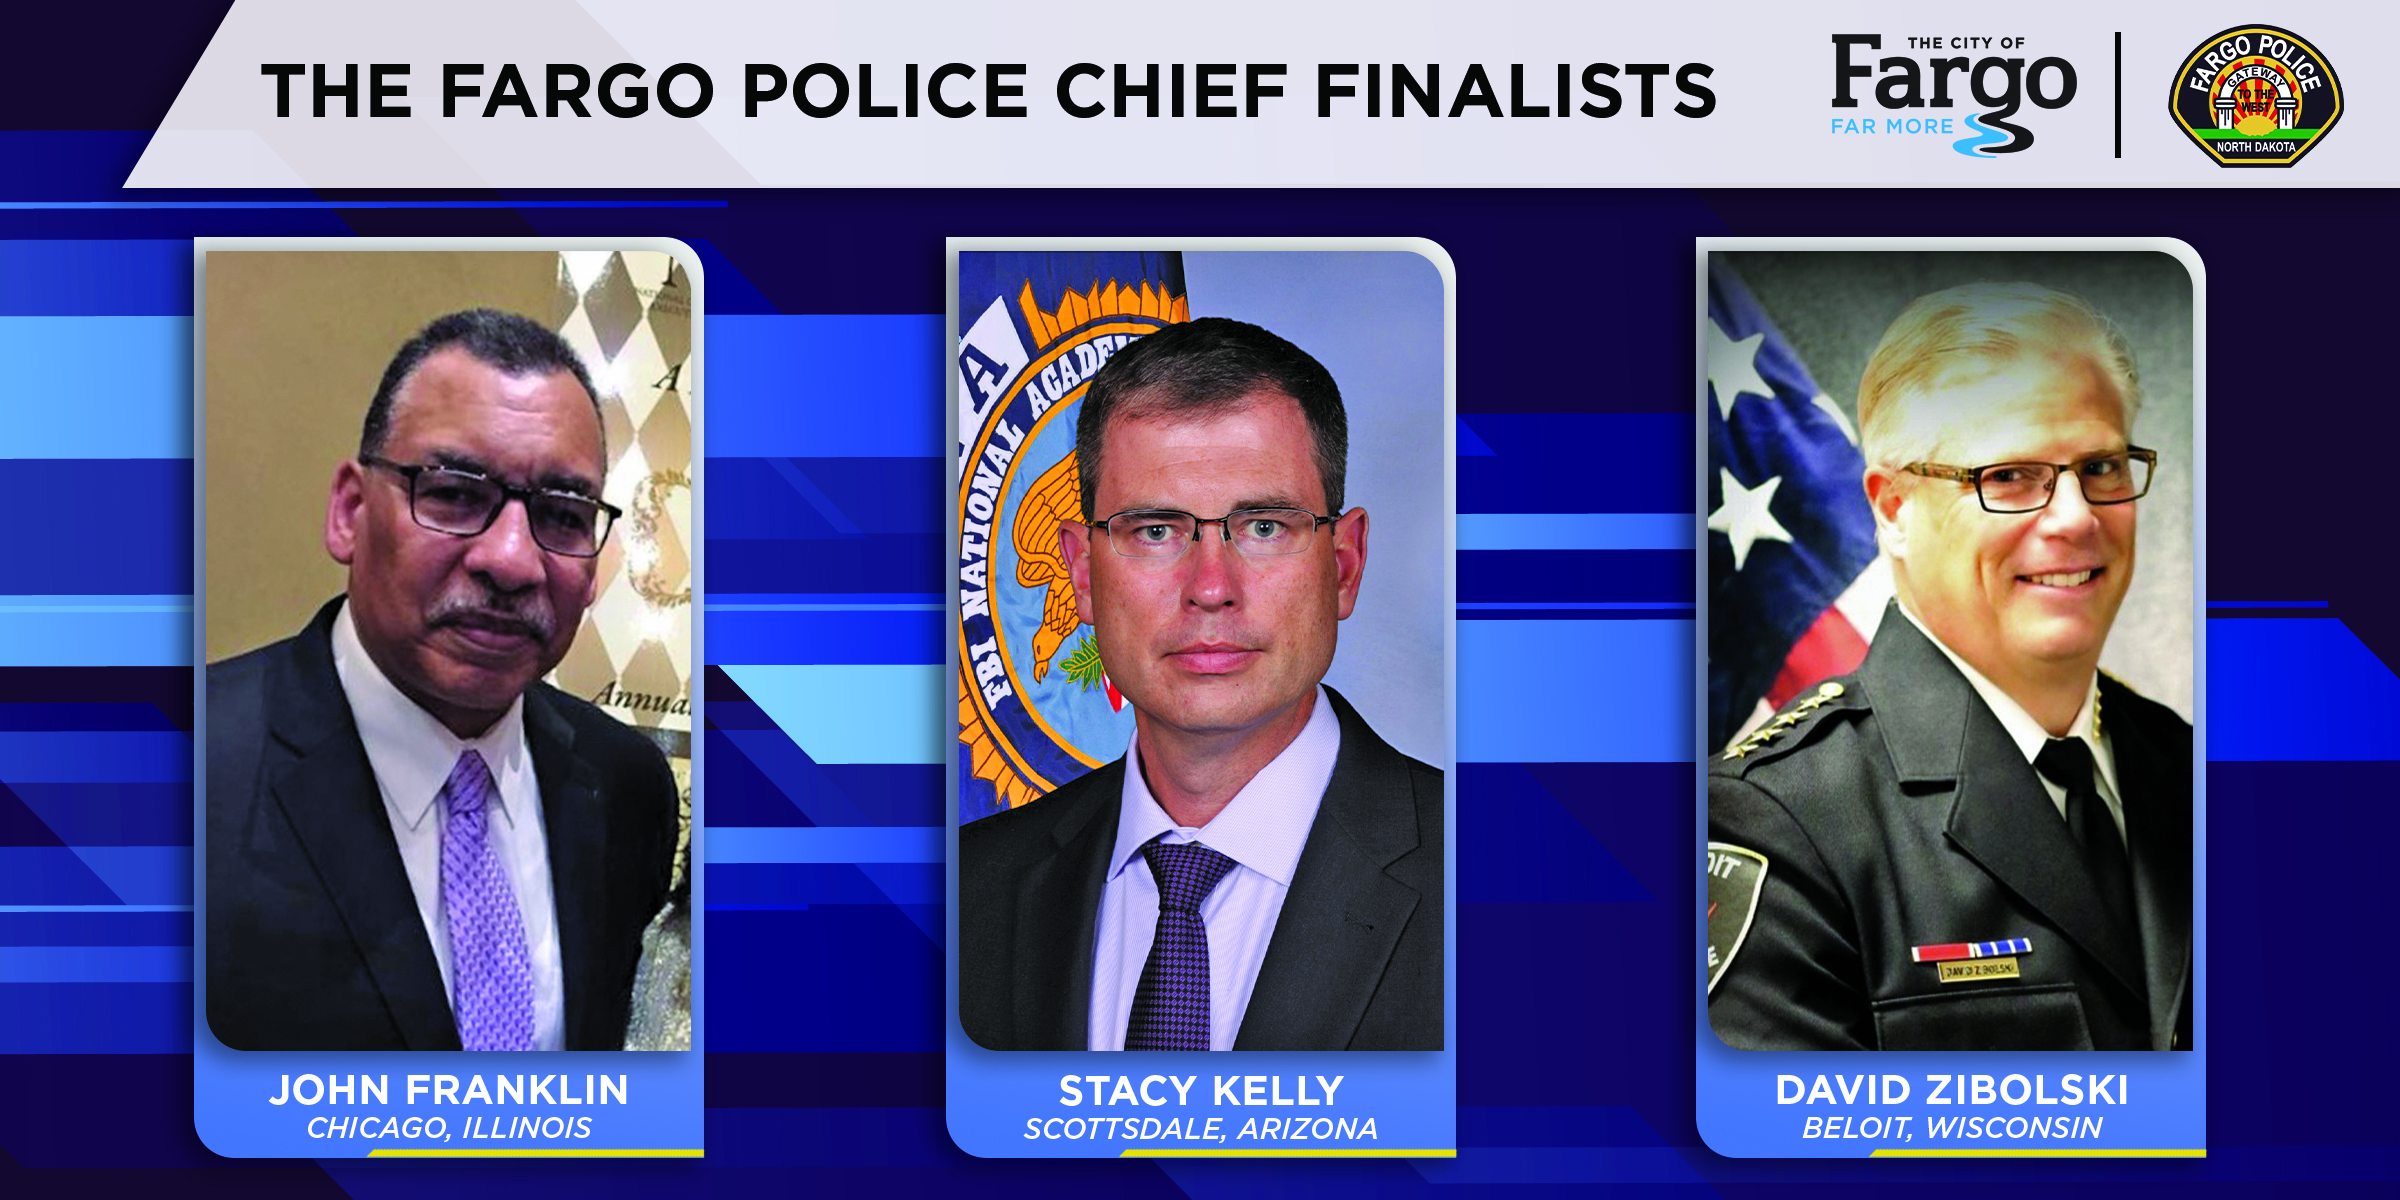 The Fargo Police Chief Finalists